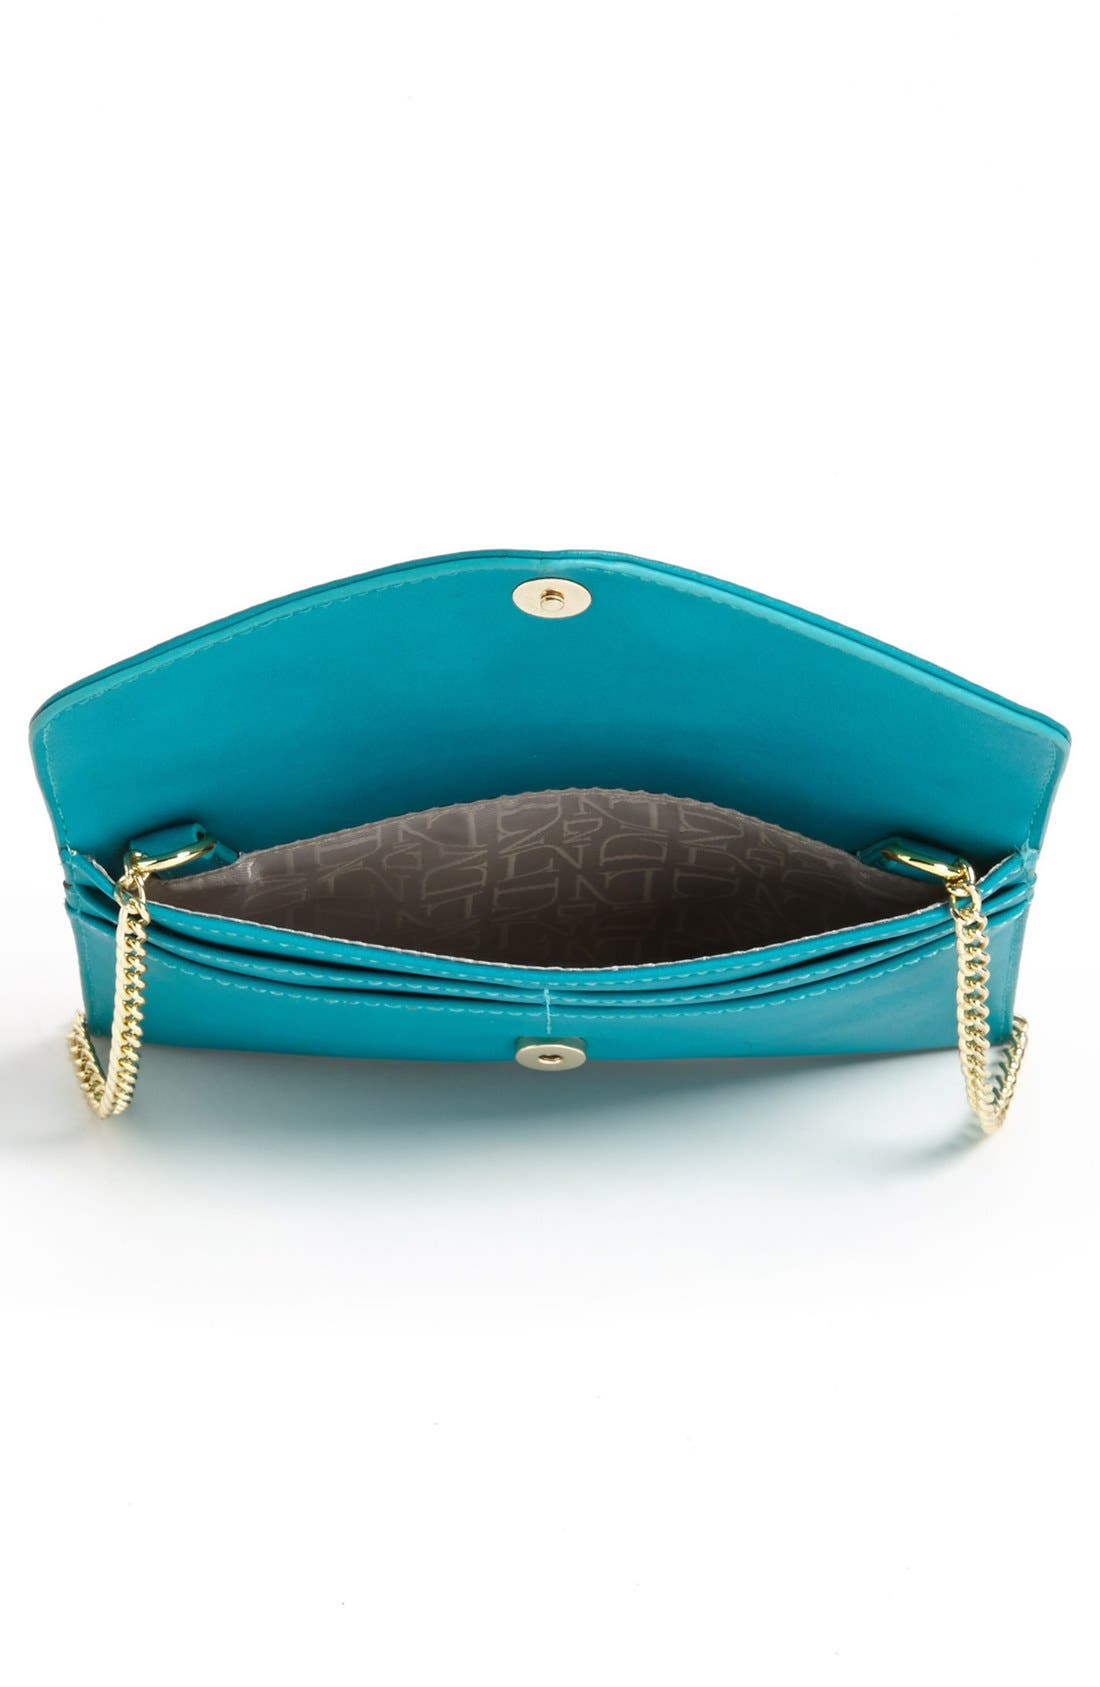 Alternate Image 3  - Danielle Nicole 'Tina' Faux Leather Crossbody Pouch